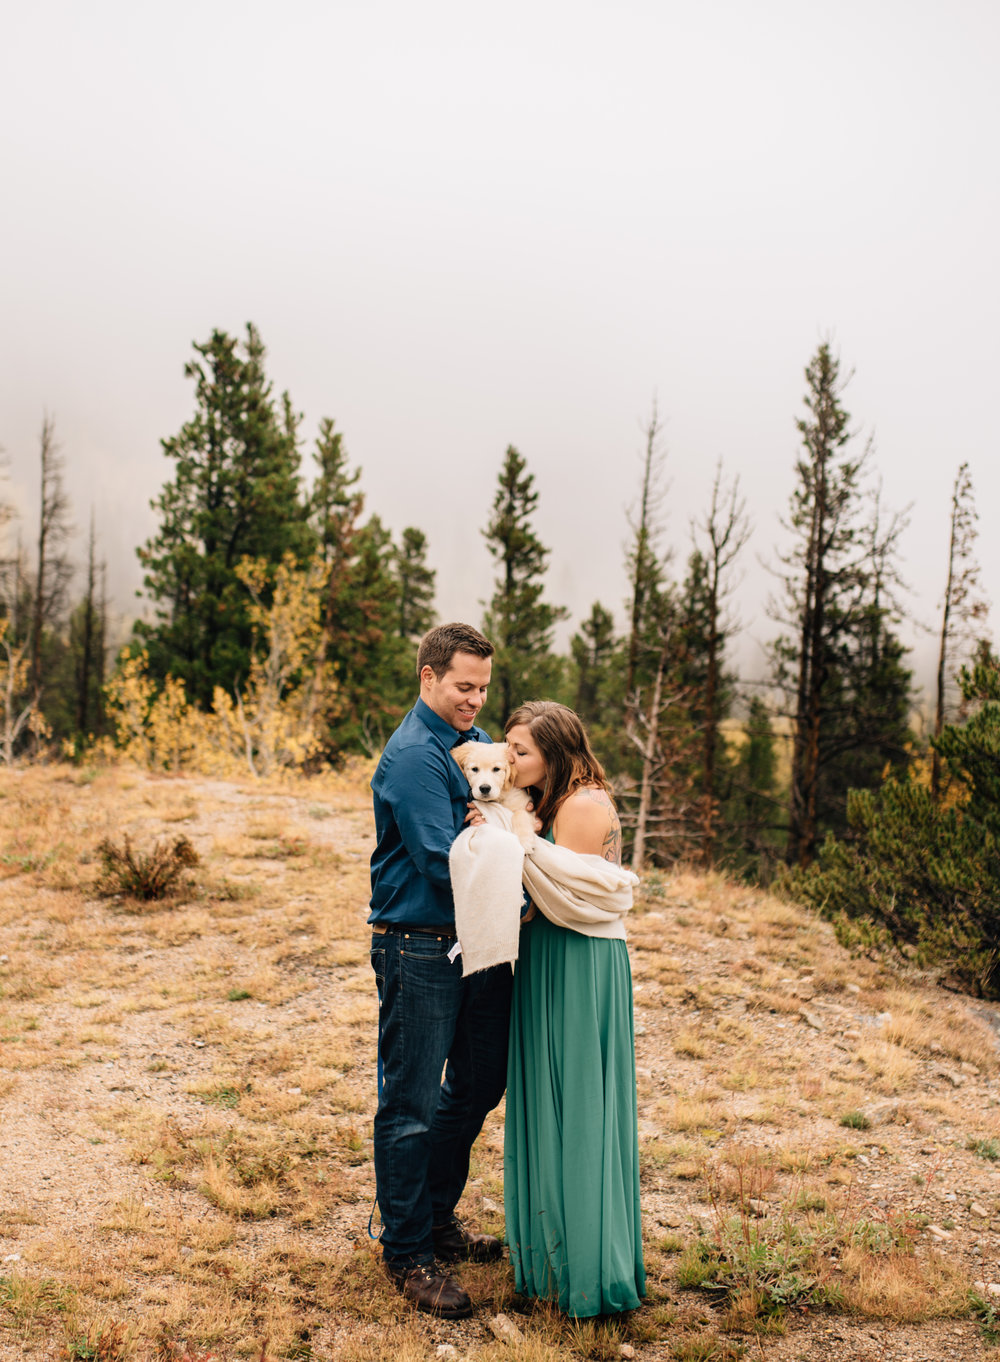 Telluride, Colorado elopement photographer.